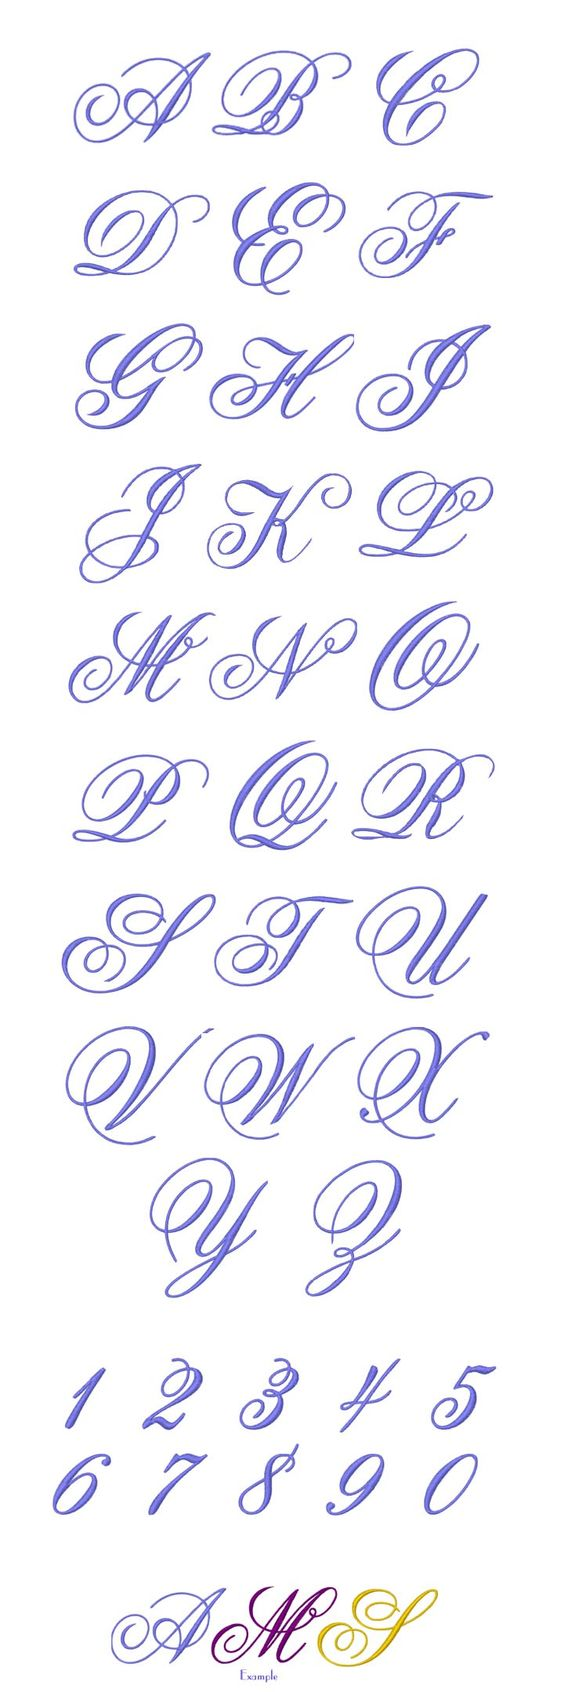 MONOGRAM Embroidery Designs Free Embroidery Design Patterns Applique